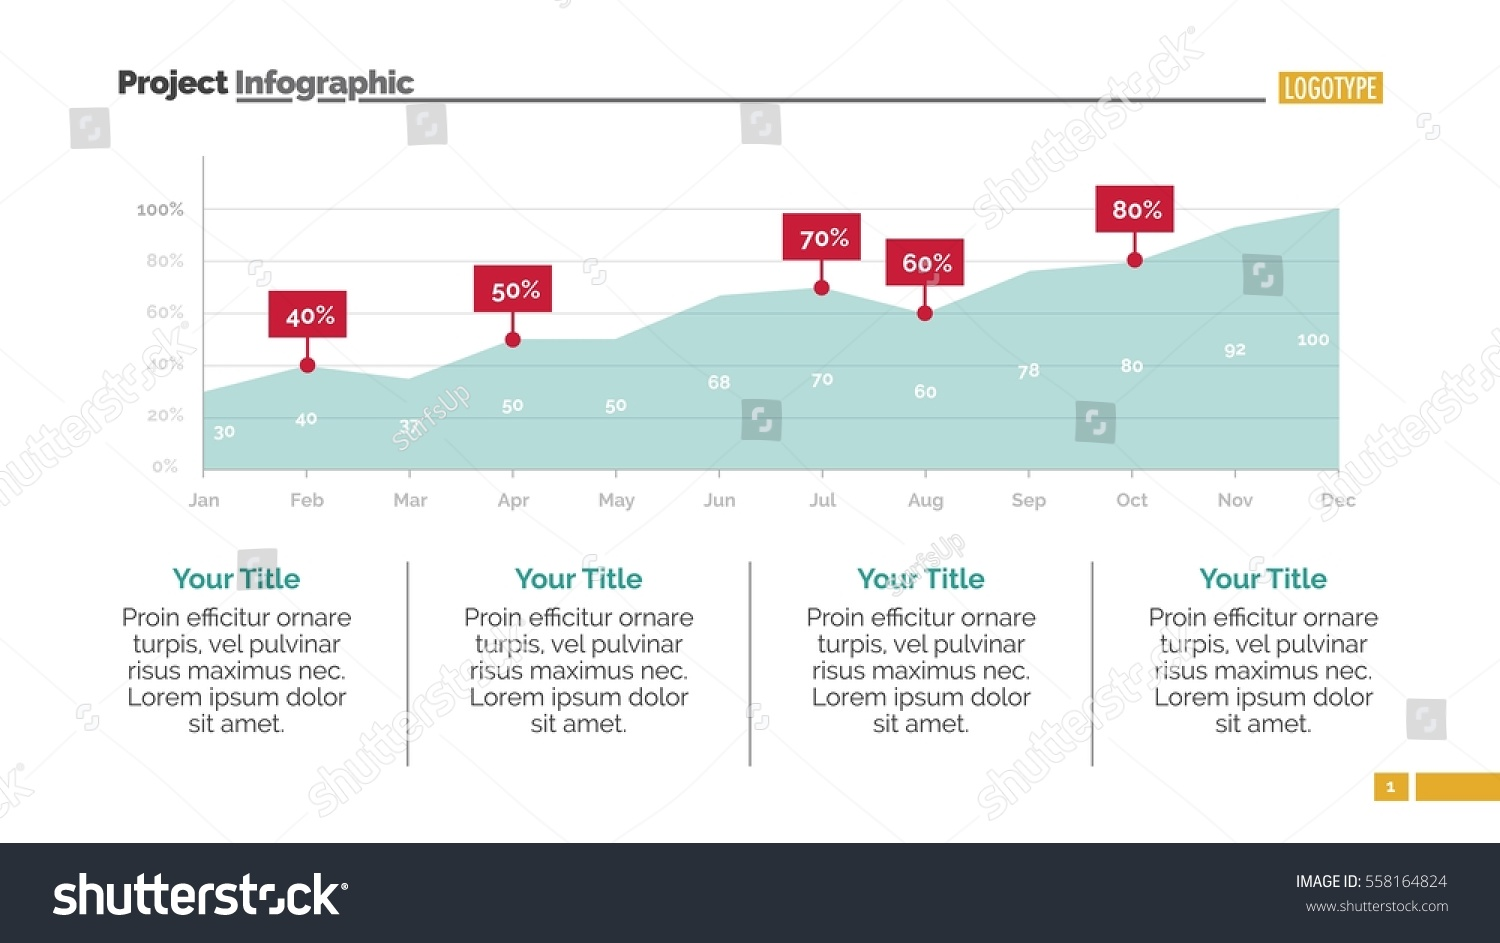 Great Vuze Template Pictures >> Faq Meta Search Vuzewiki. Android ...